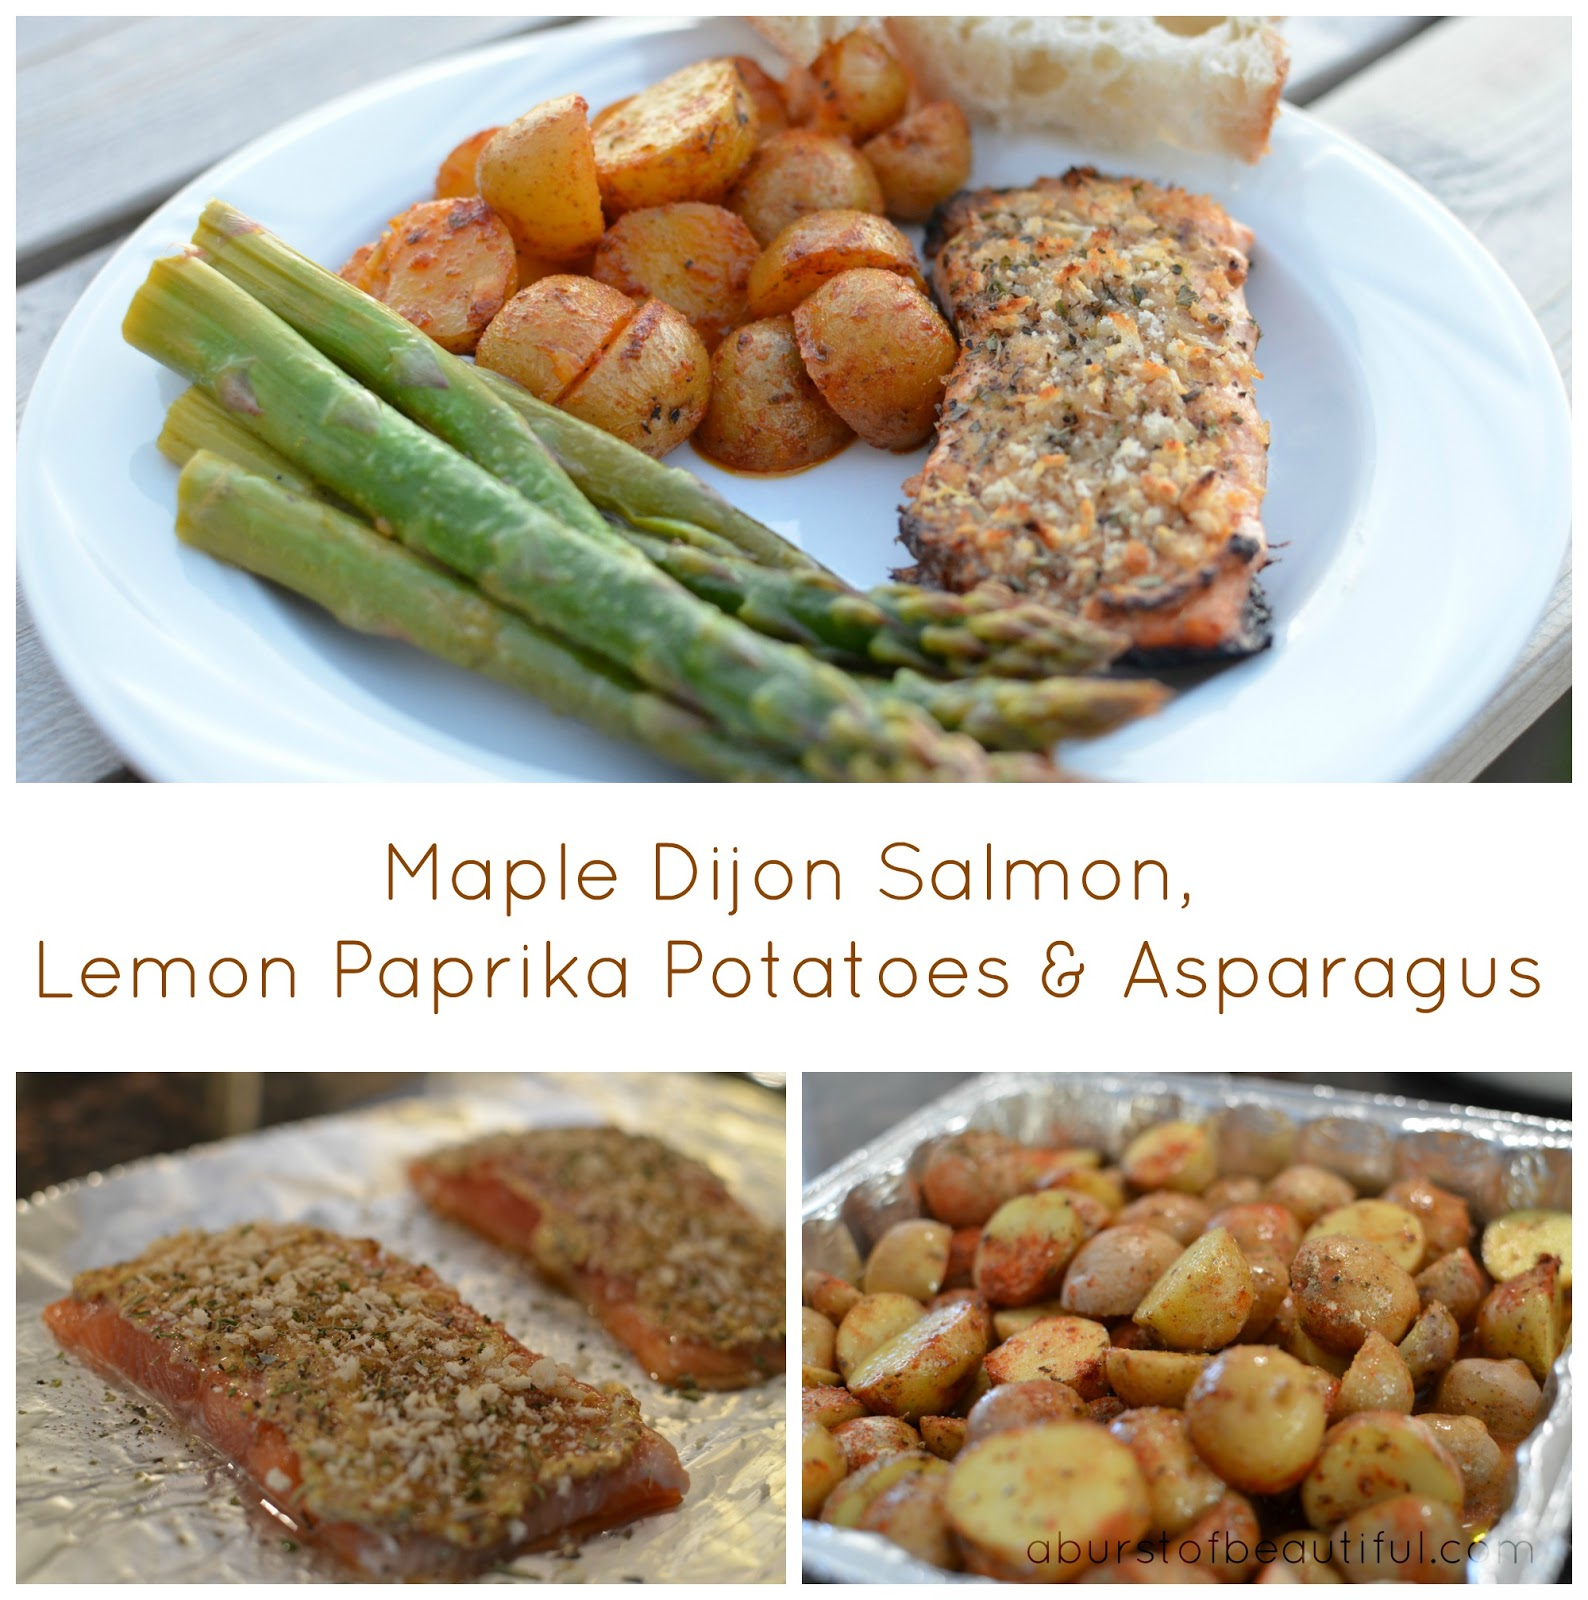 BBQ_MAPLE_DIJON_SALMON_LEMON_PAPRIKA_POTATOES_ASPARAGUS_PIN